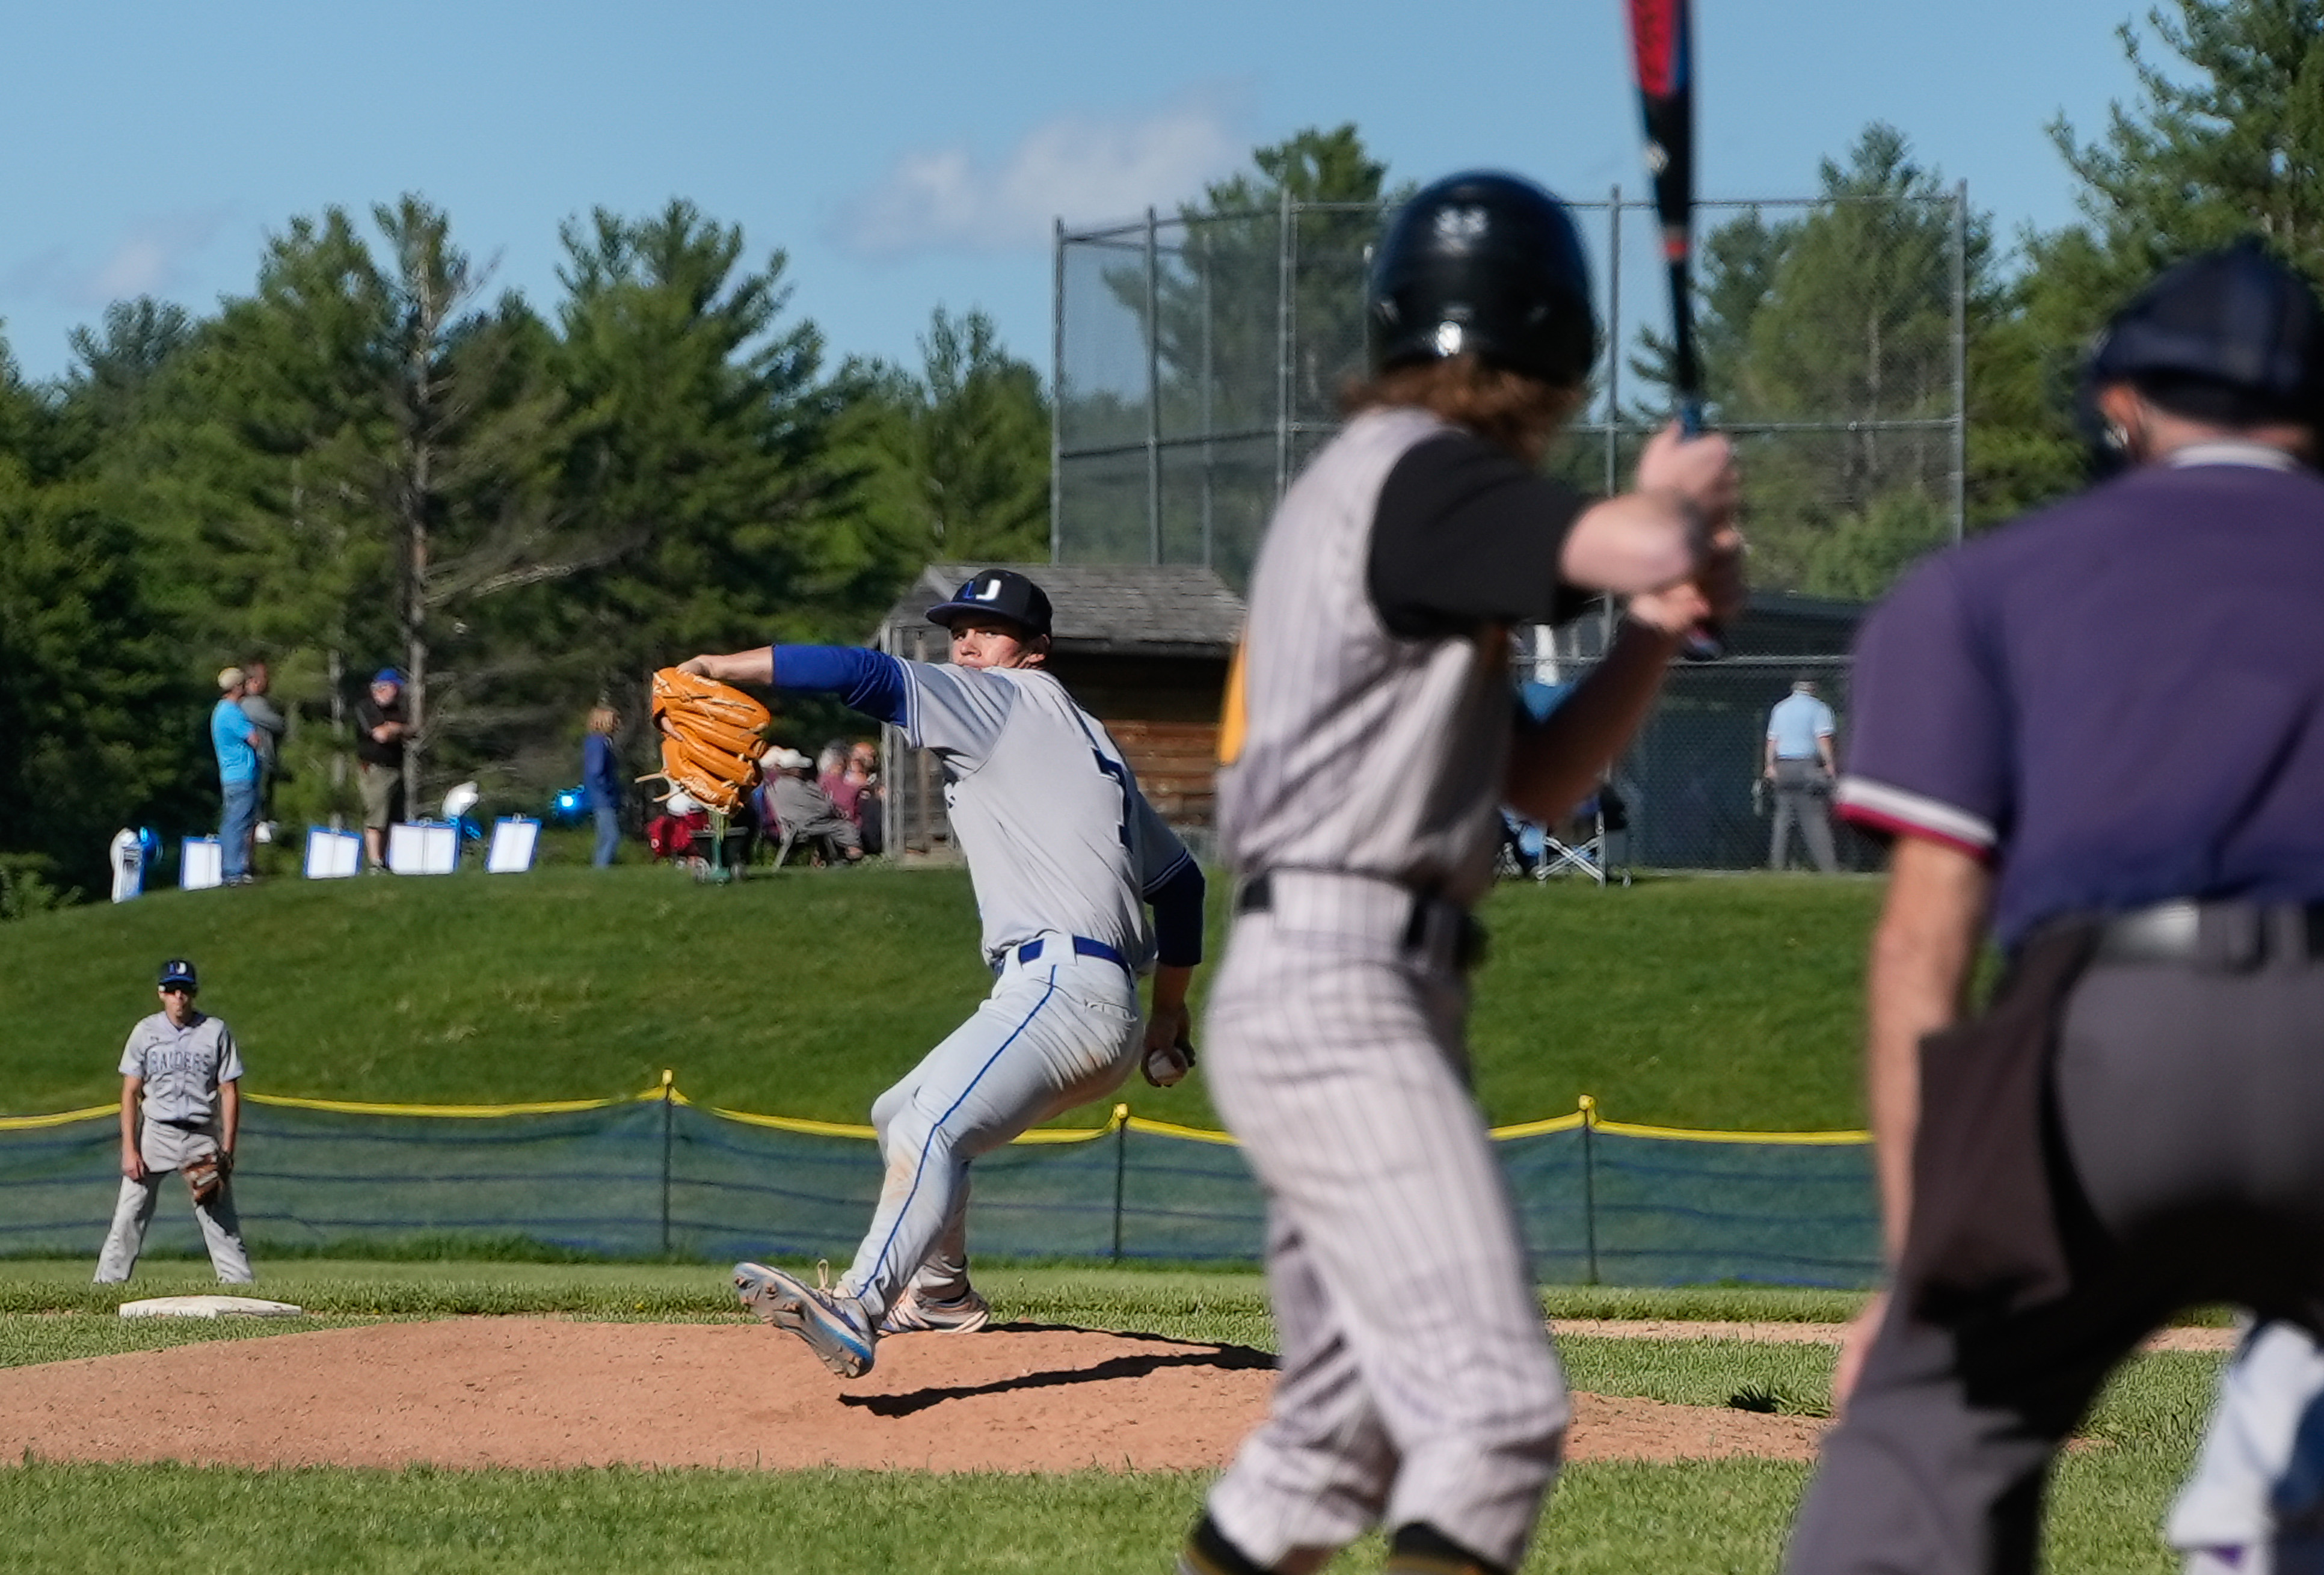 Kellington could be the second player drafted from Vermont to make it into the big leagues.